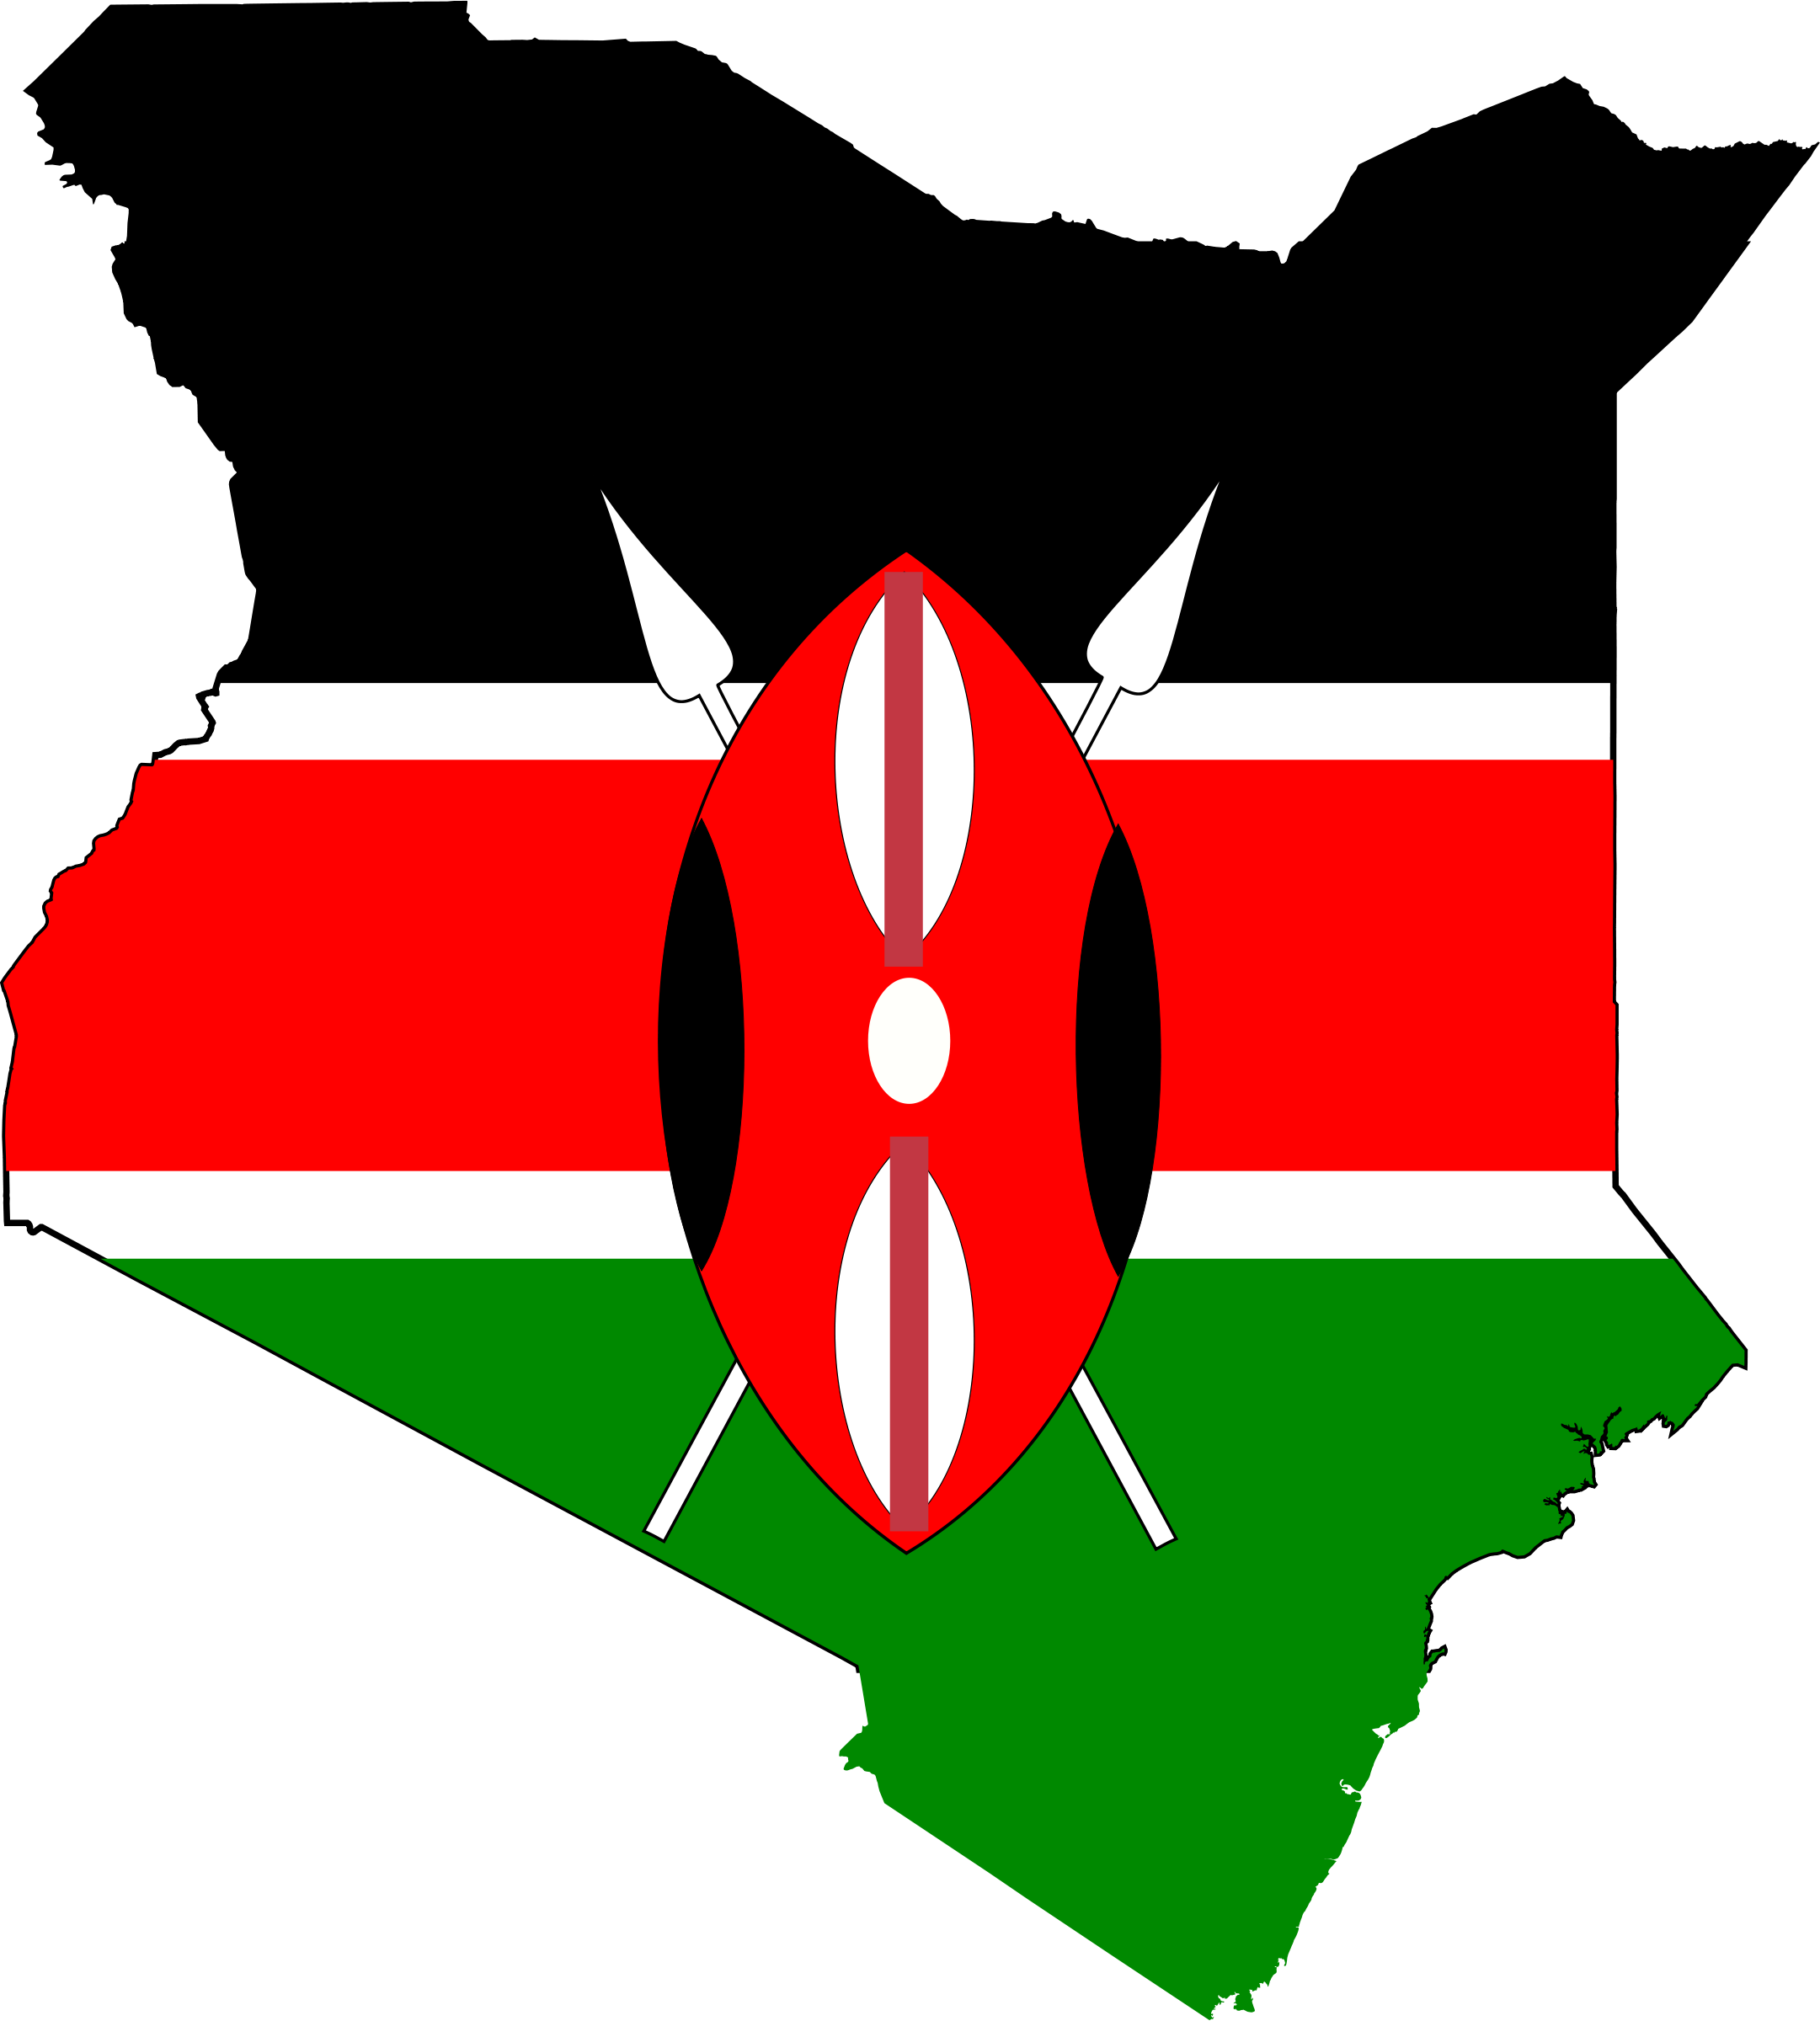 Kenya National Flag 252.98 Kb